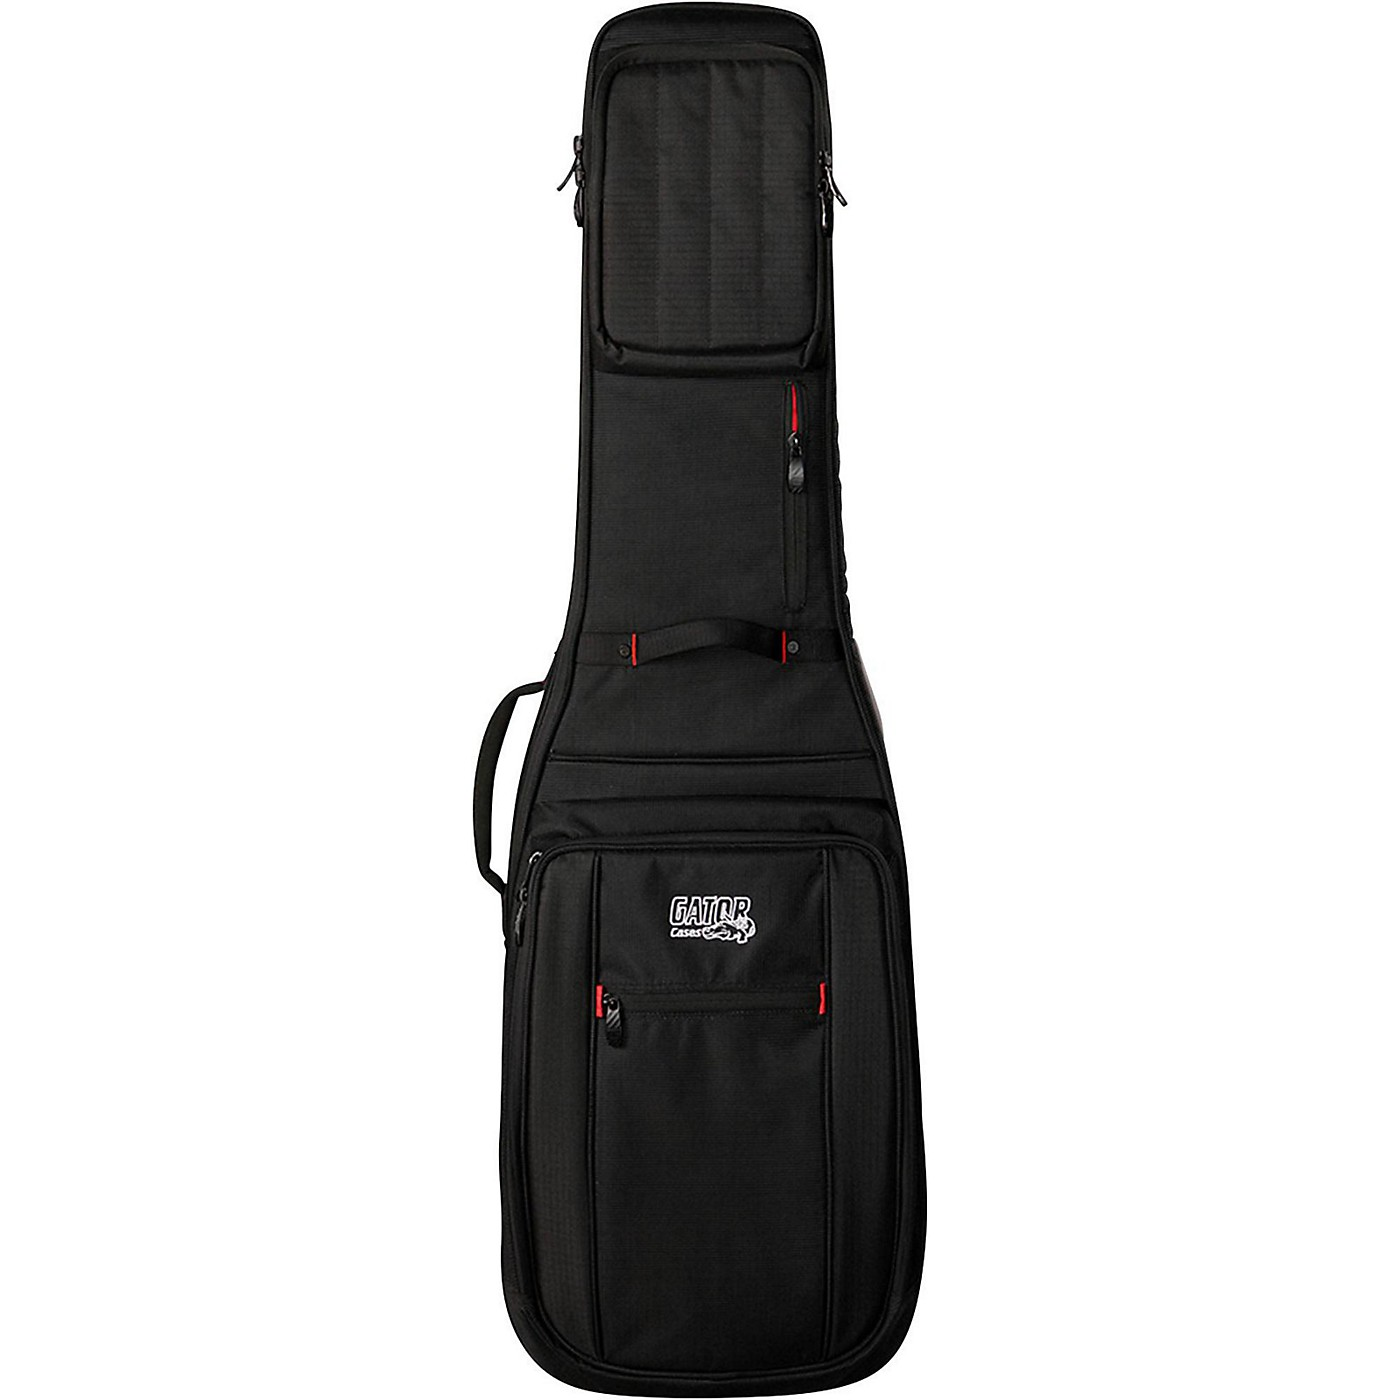 Gator G-PG ELEC 2X ProGo Series Ultimate Gig Bag for 2 Electric Guitars thumbnail